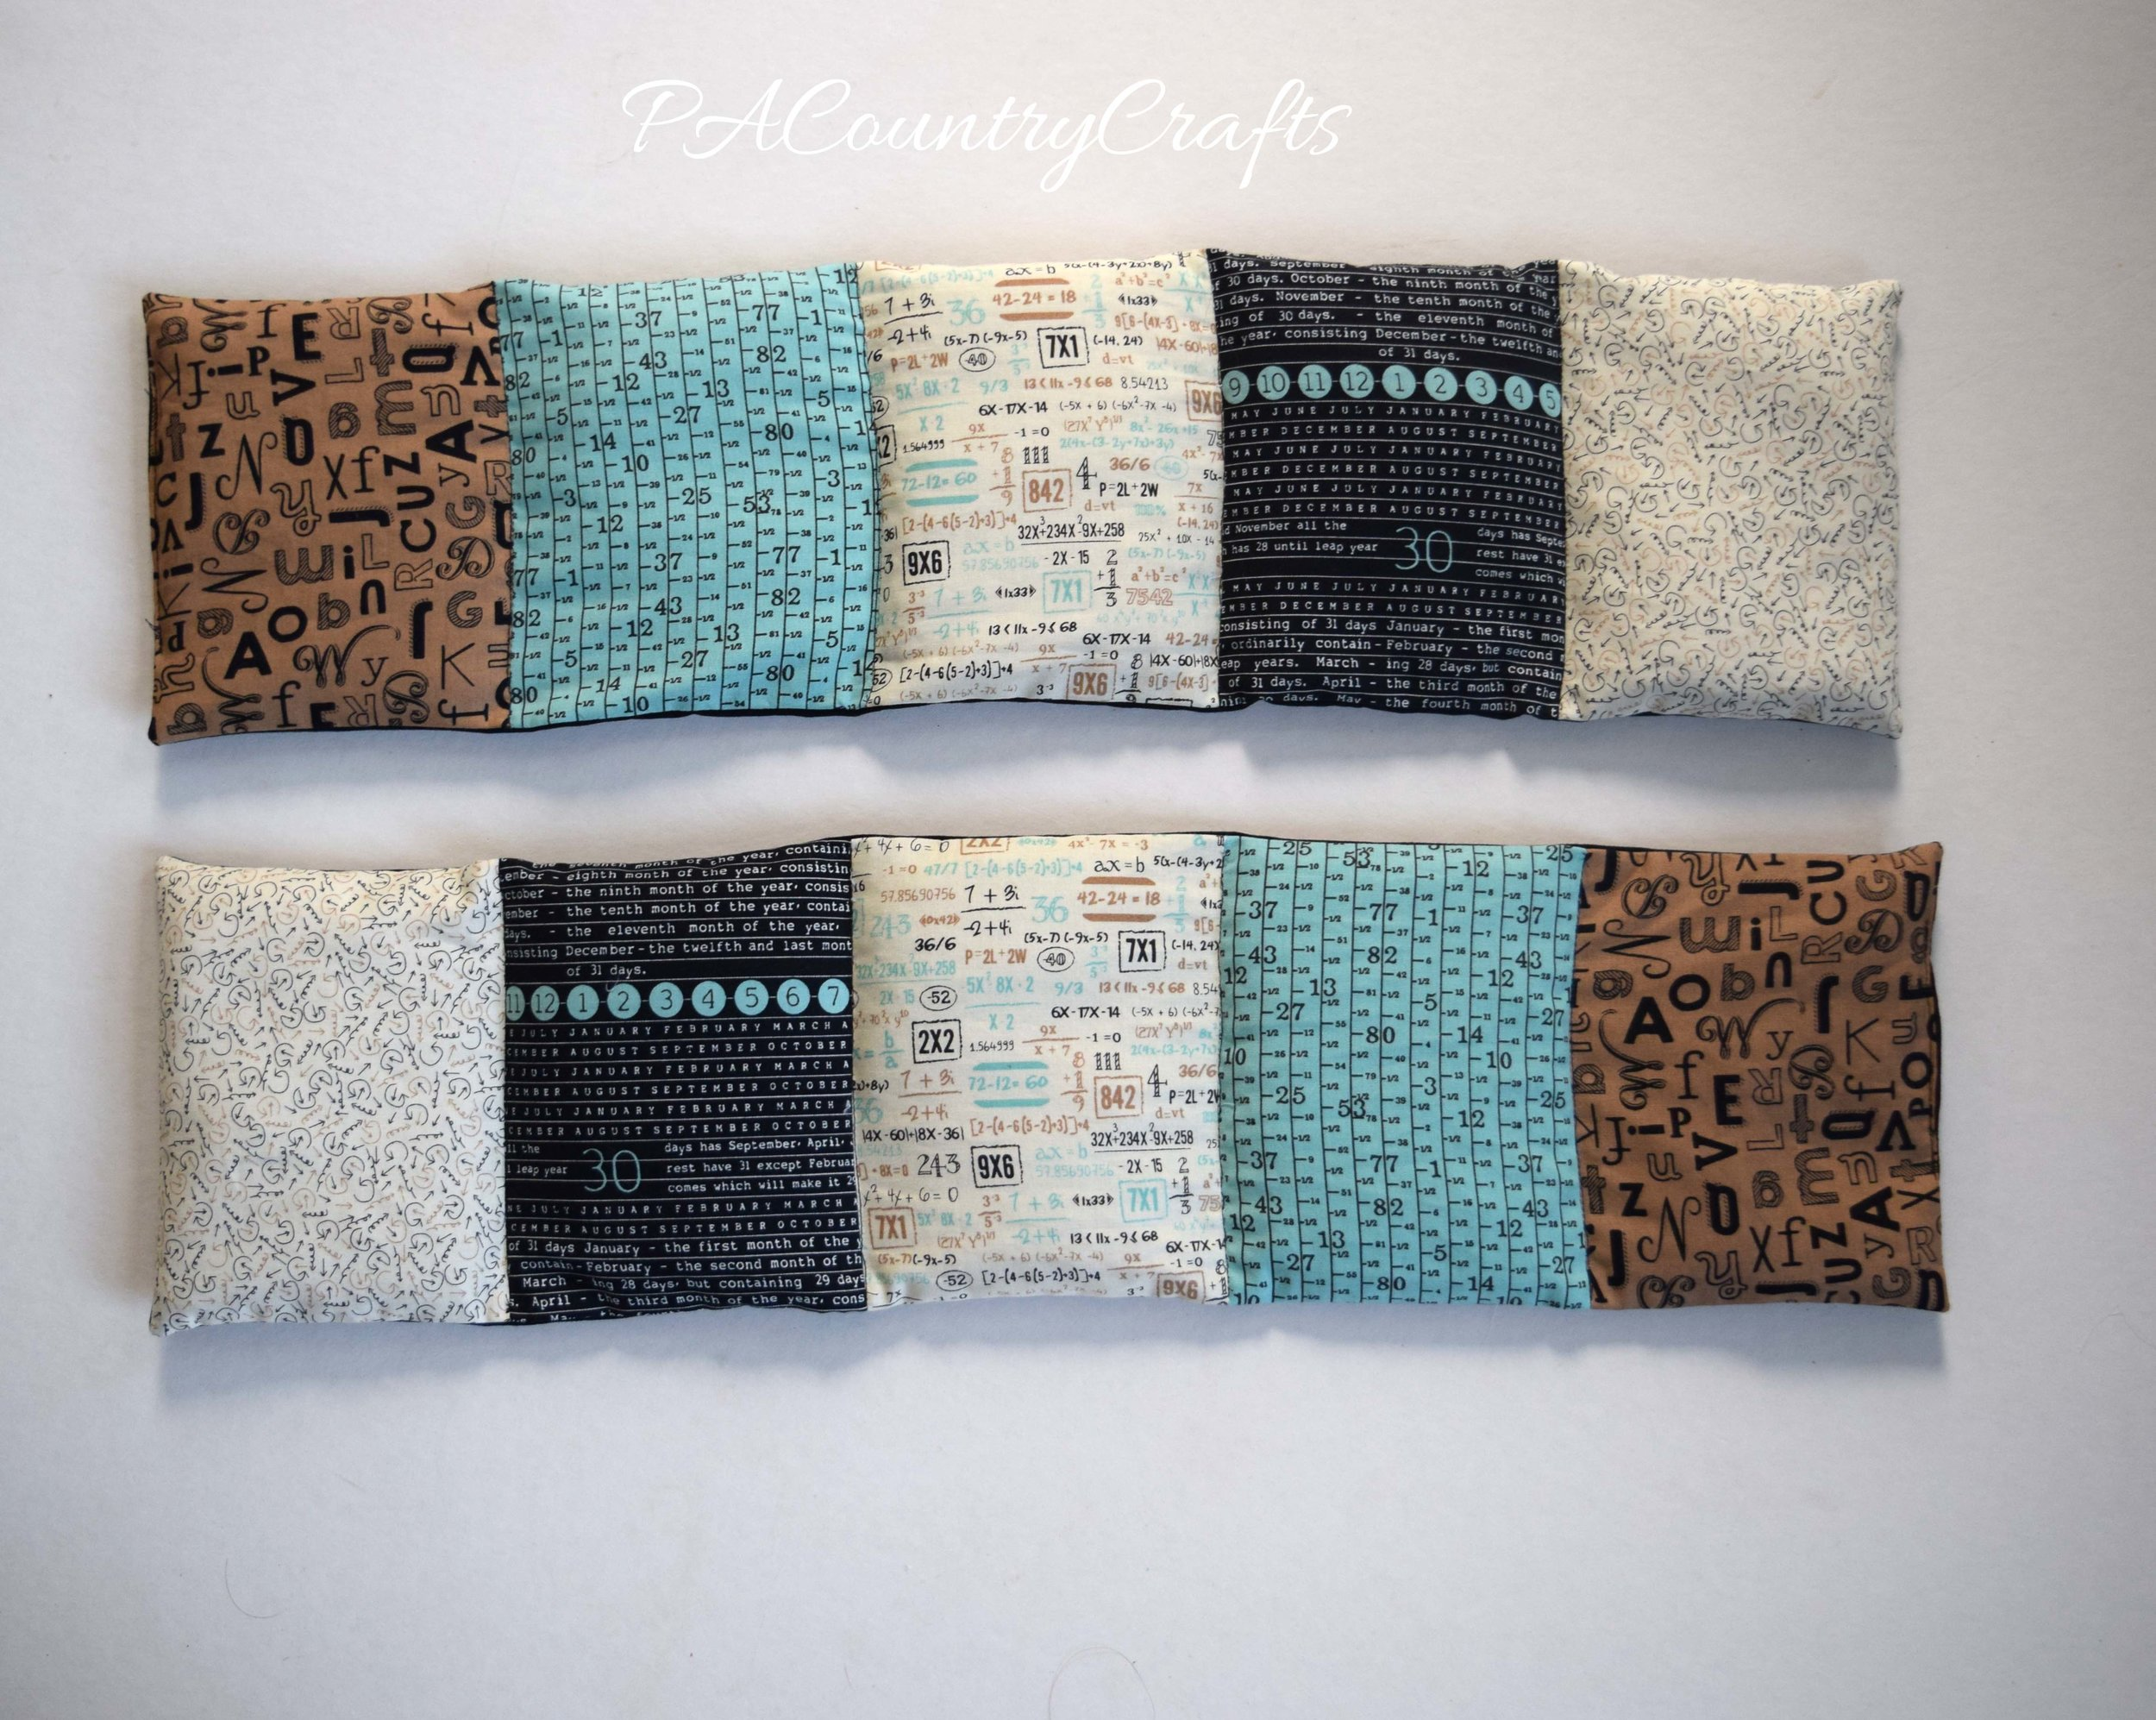 Neck warmer rice bags with stitched pockets to keep the rice in place and help it wrap around the neck.